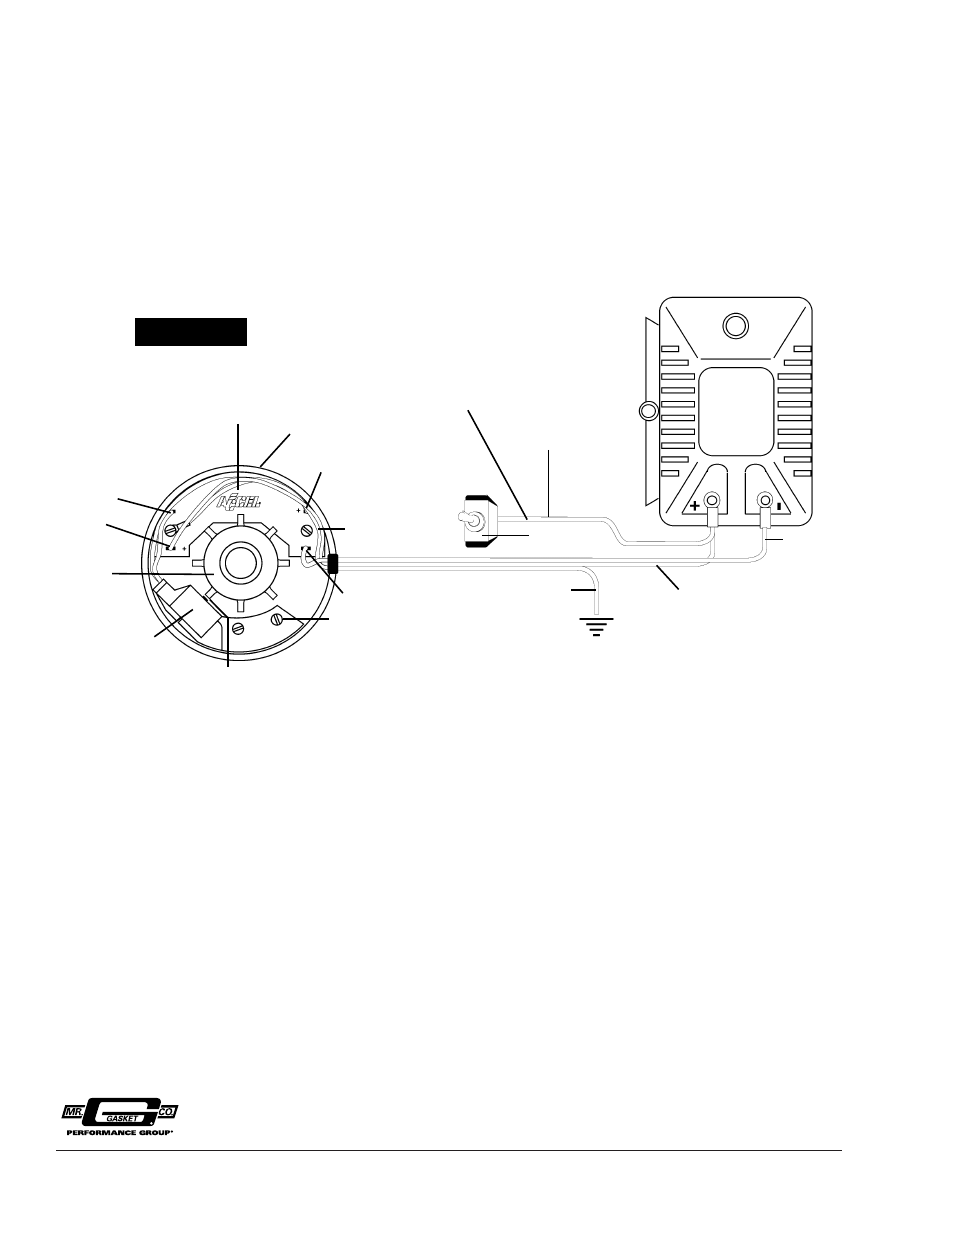 mallory ignition accel magnetic breakerless distributors 71000 page2?resize\\\=665%2C861 accel dfi wiring diagram 6a basic car parts diagram, accel ecm accel dfi gen 6 wiring diagram at alyssarenee.co